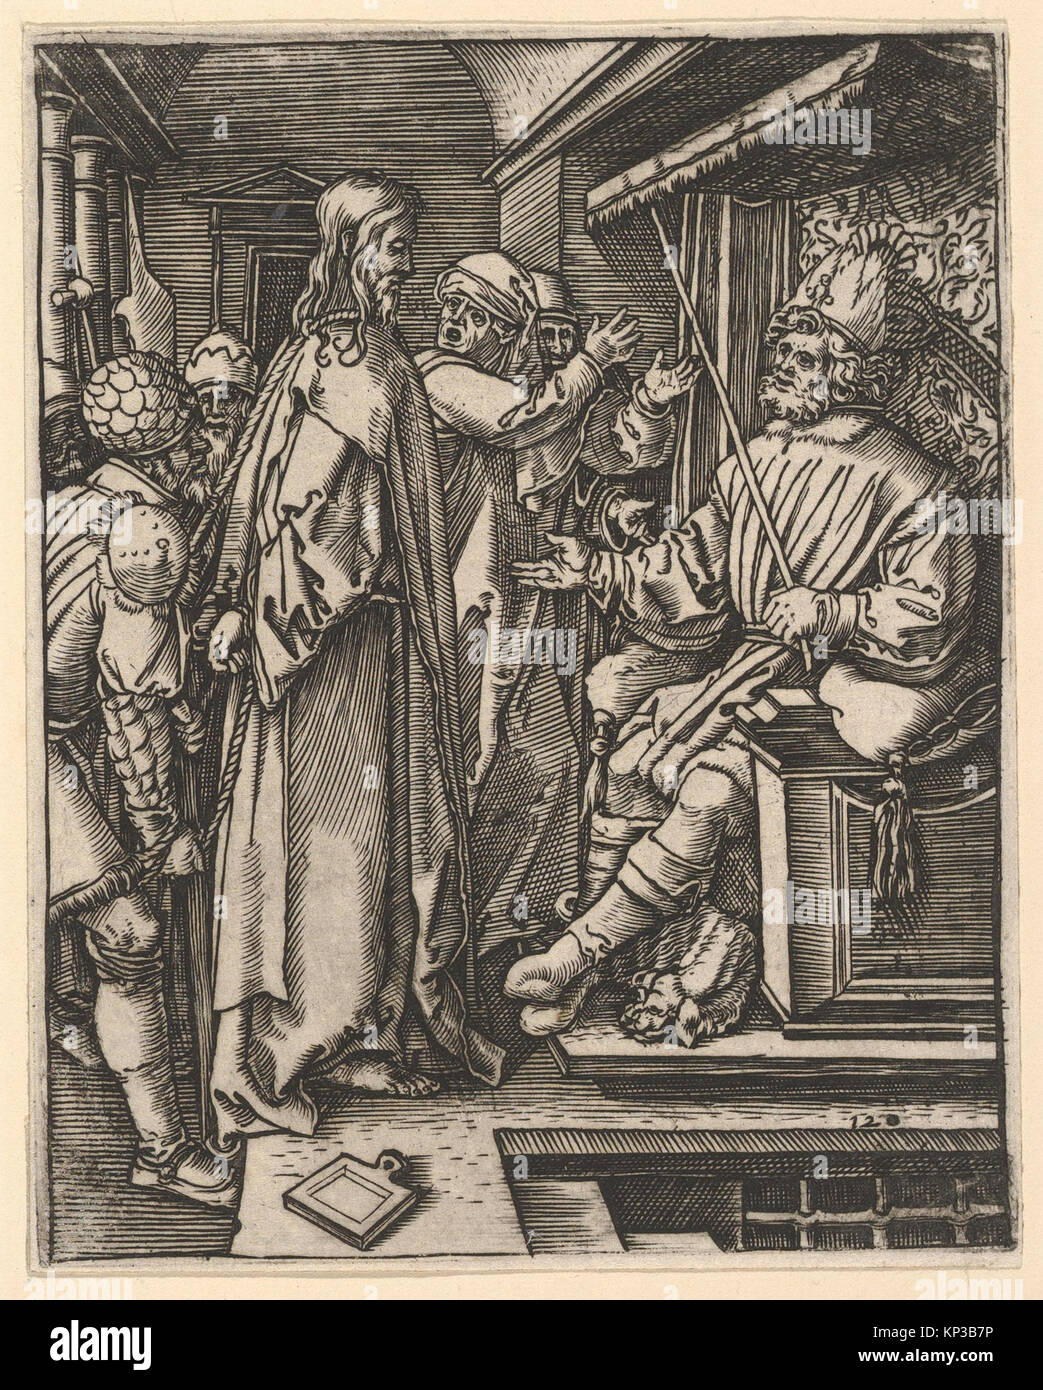 Christ standing, hands tied behind back, before Herod seated on throne, after DC3BCrer MET DP820317 342720 - Stock Image